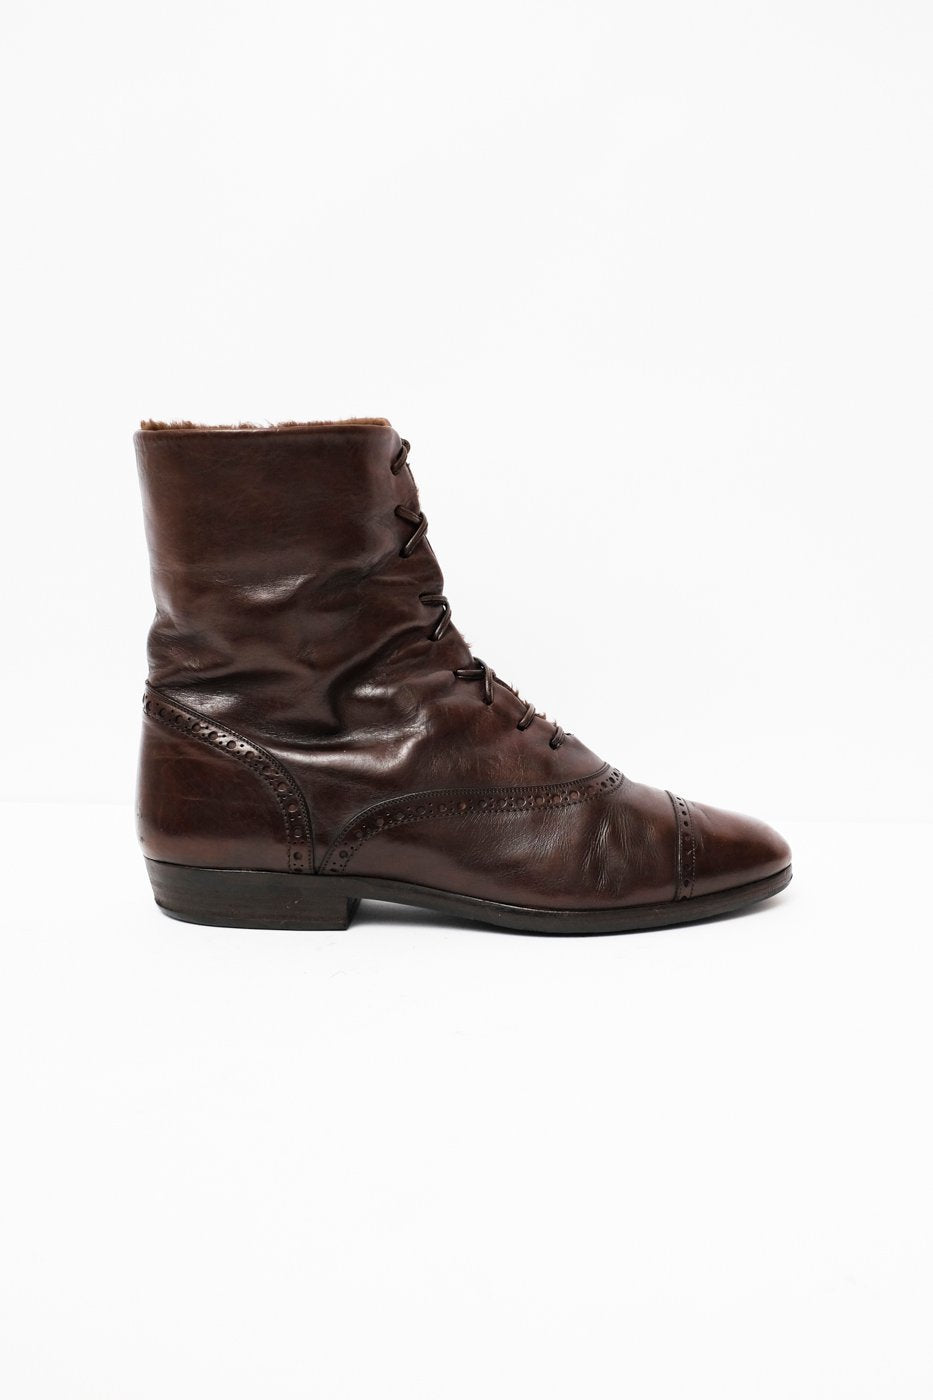 0335_BANFI 38 39 WARM WINTER LEATHER LACE UP BOOTS